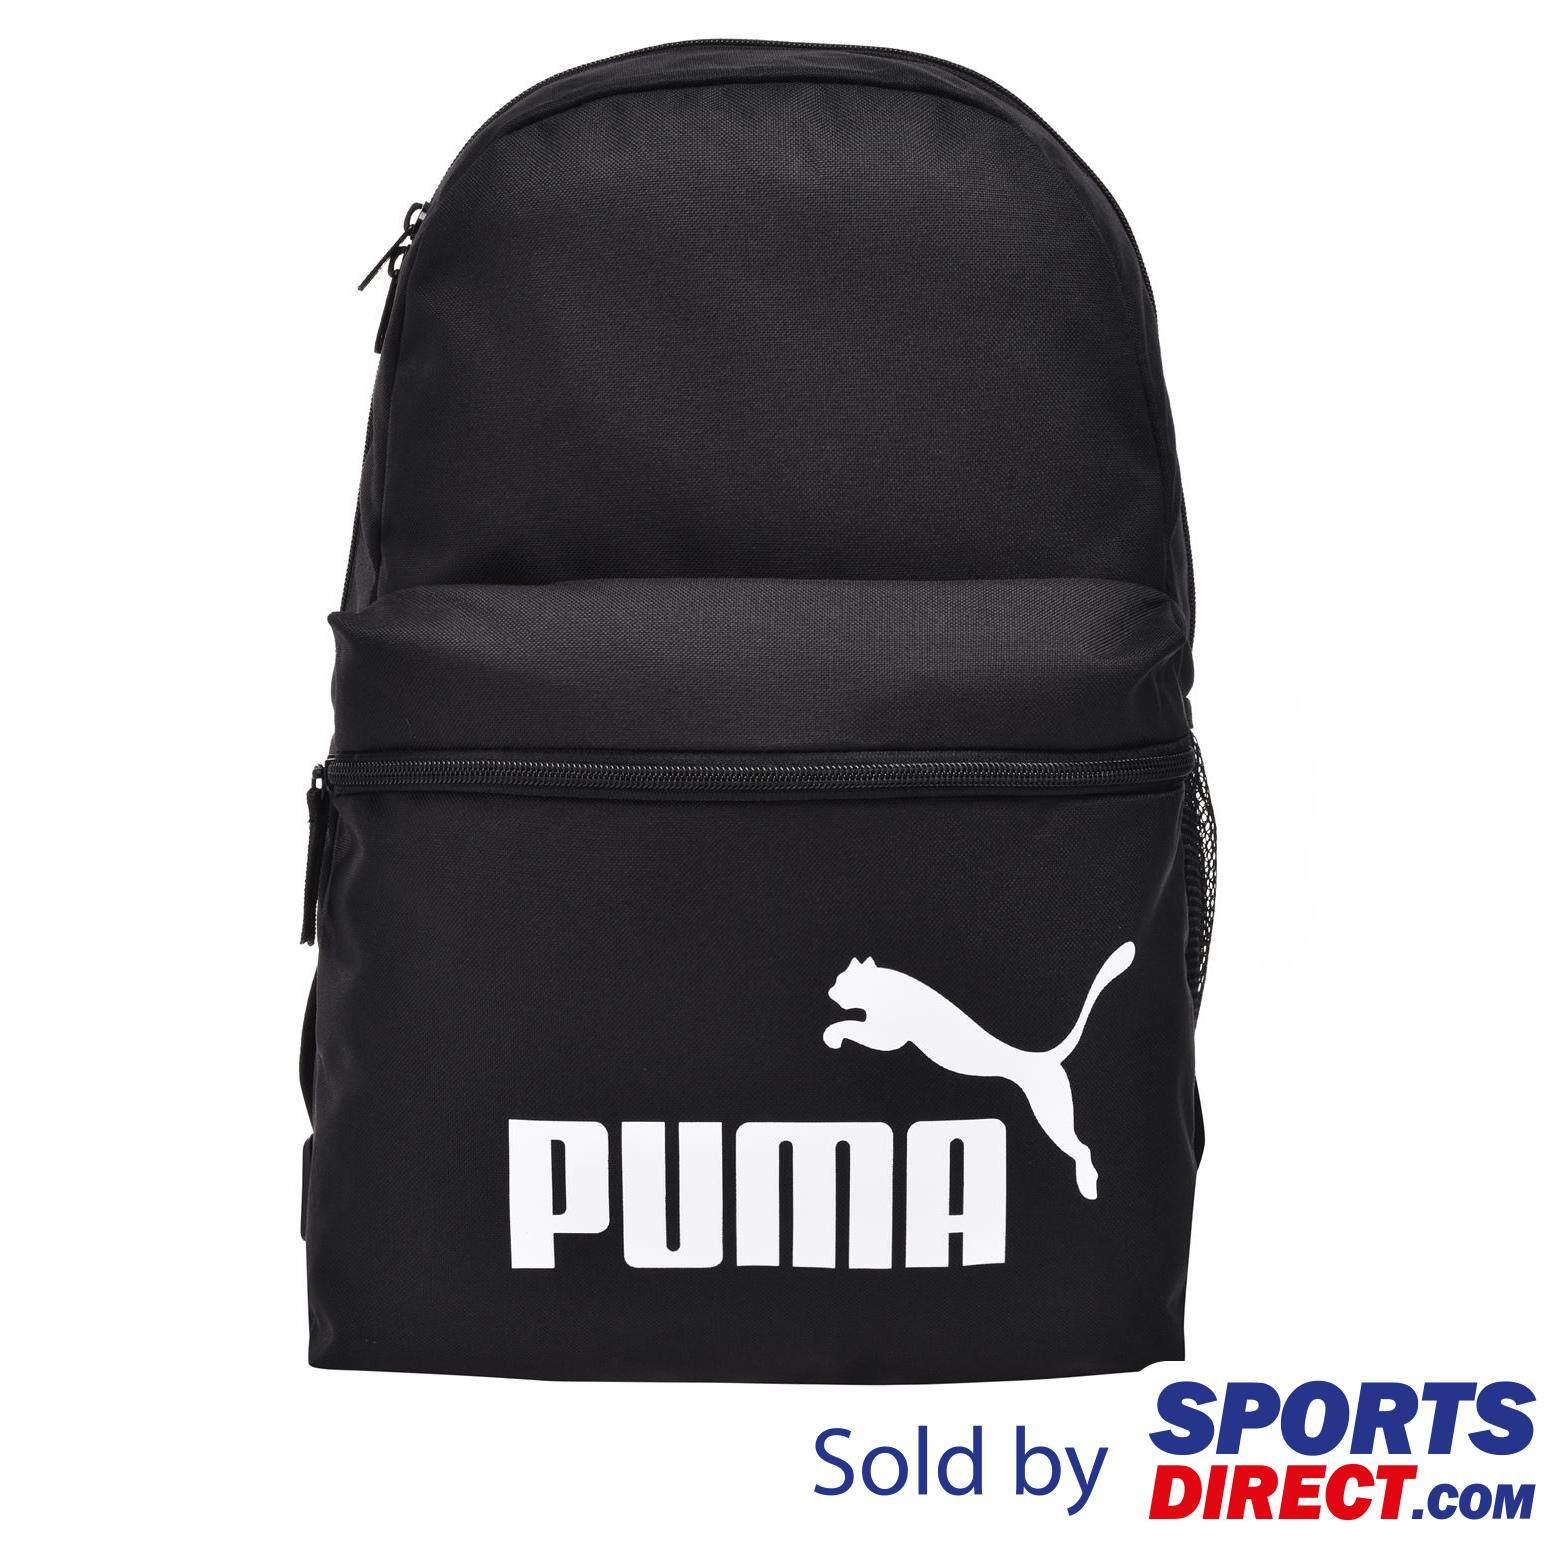 Puma Products With Best Online Price At Lazada Malaysia b394a3b3cb2b